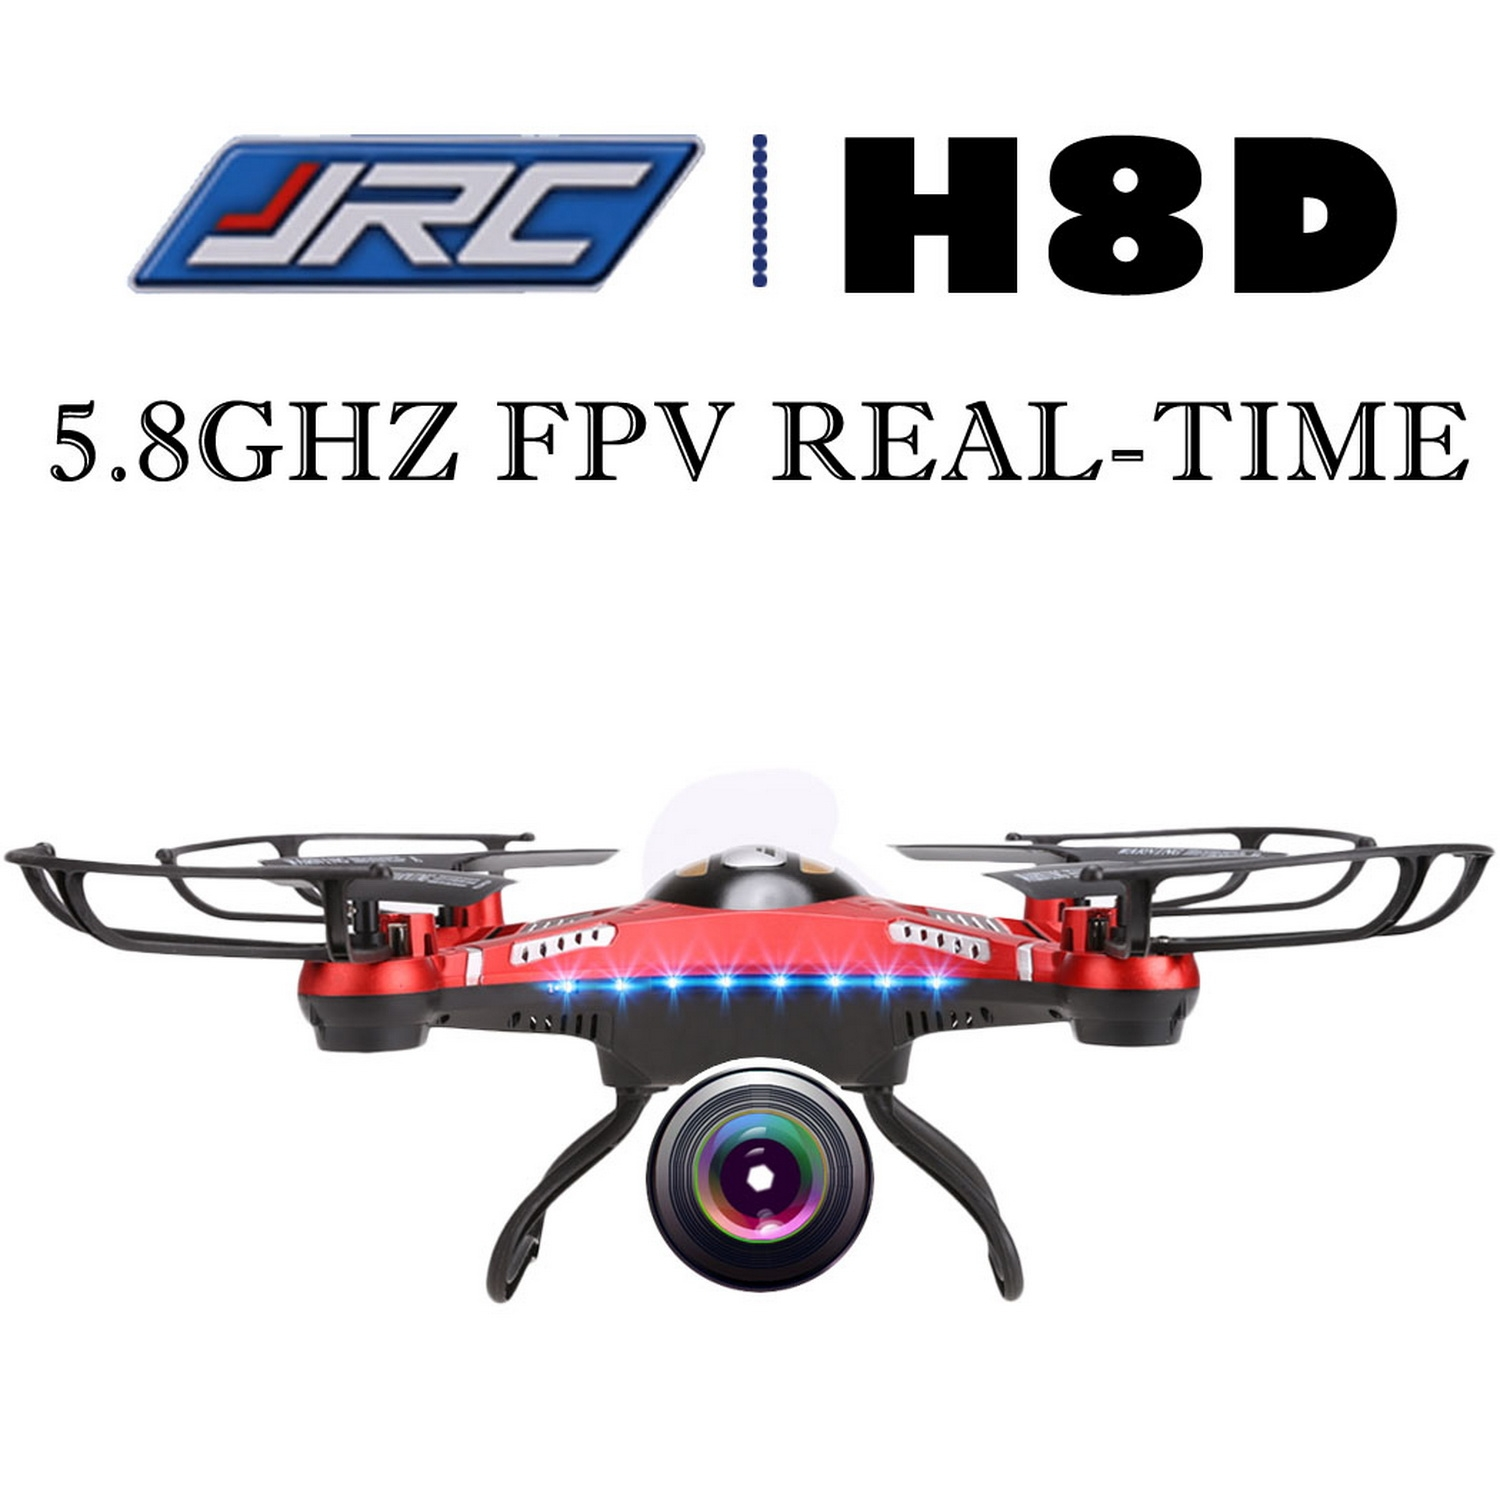 JJRC 6 Axis RC Quadcopter 2.4G 5.8GHz RC Flying Drone wit...